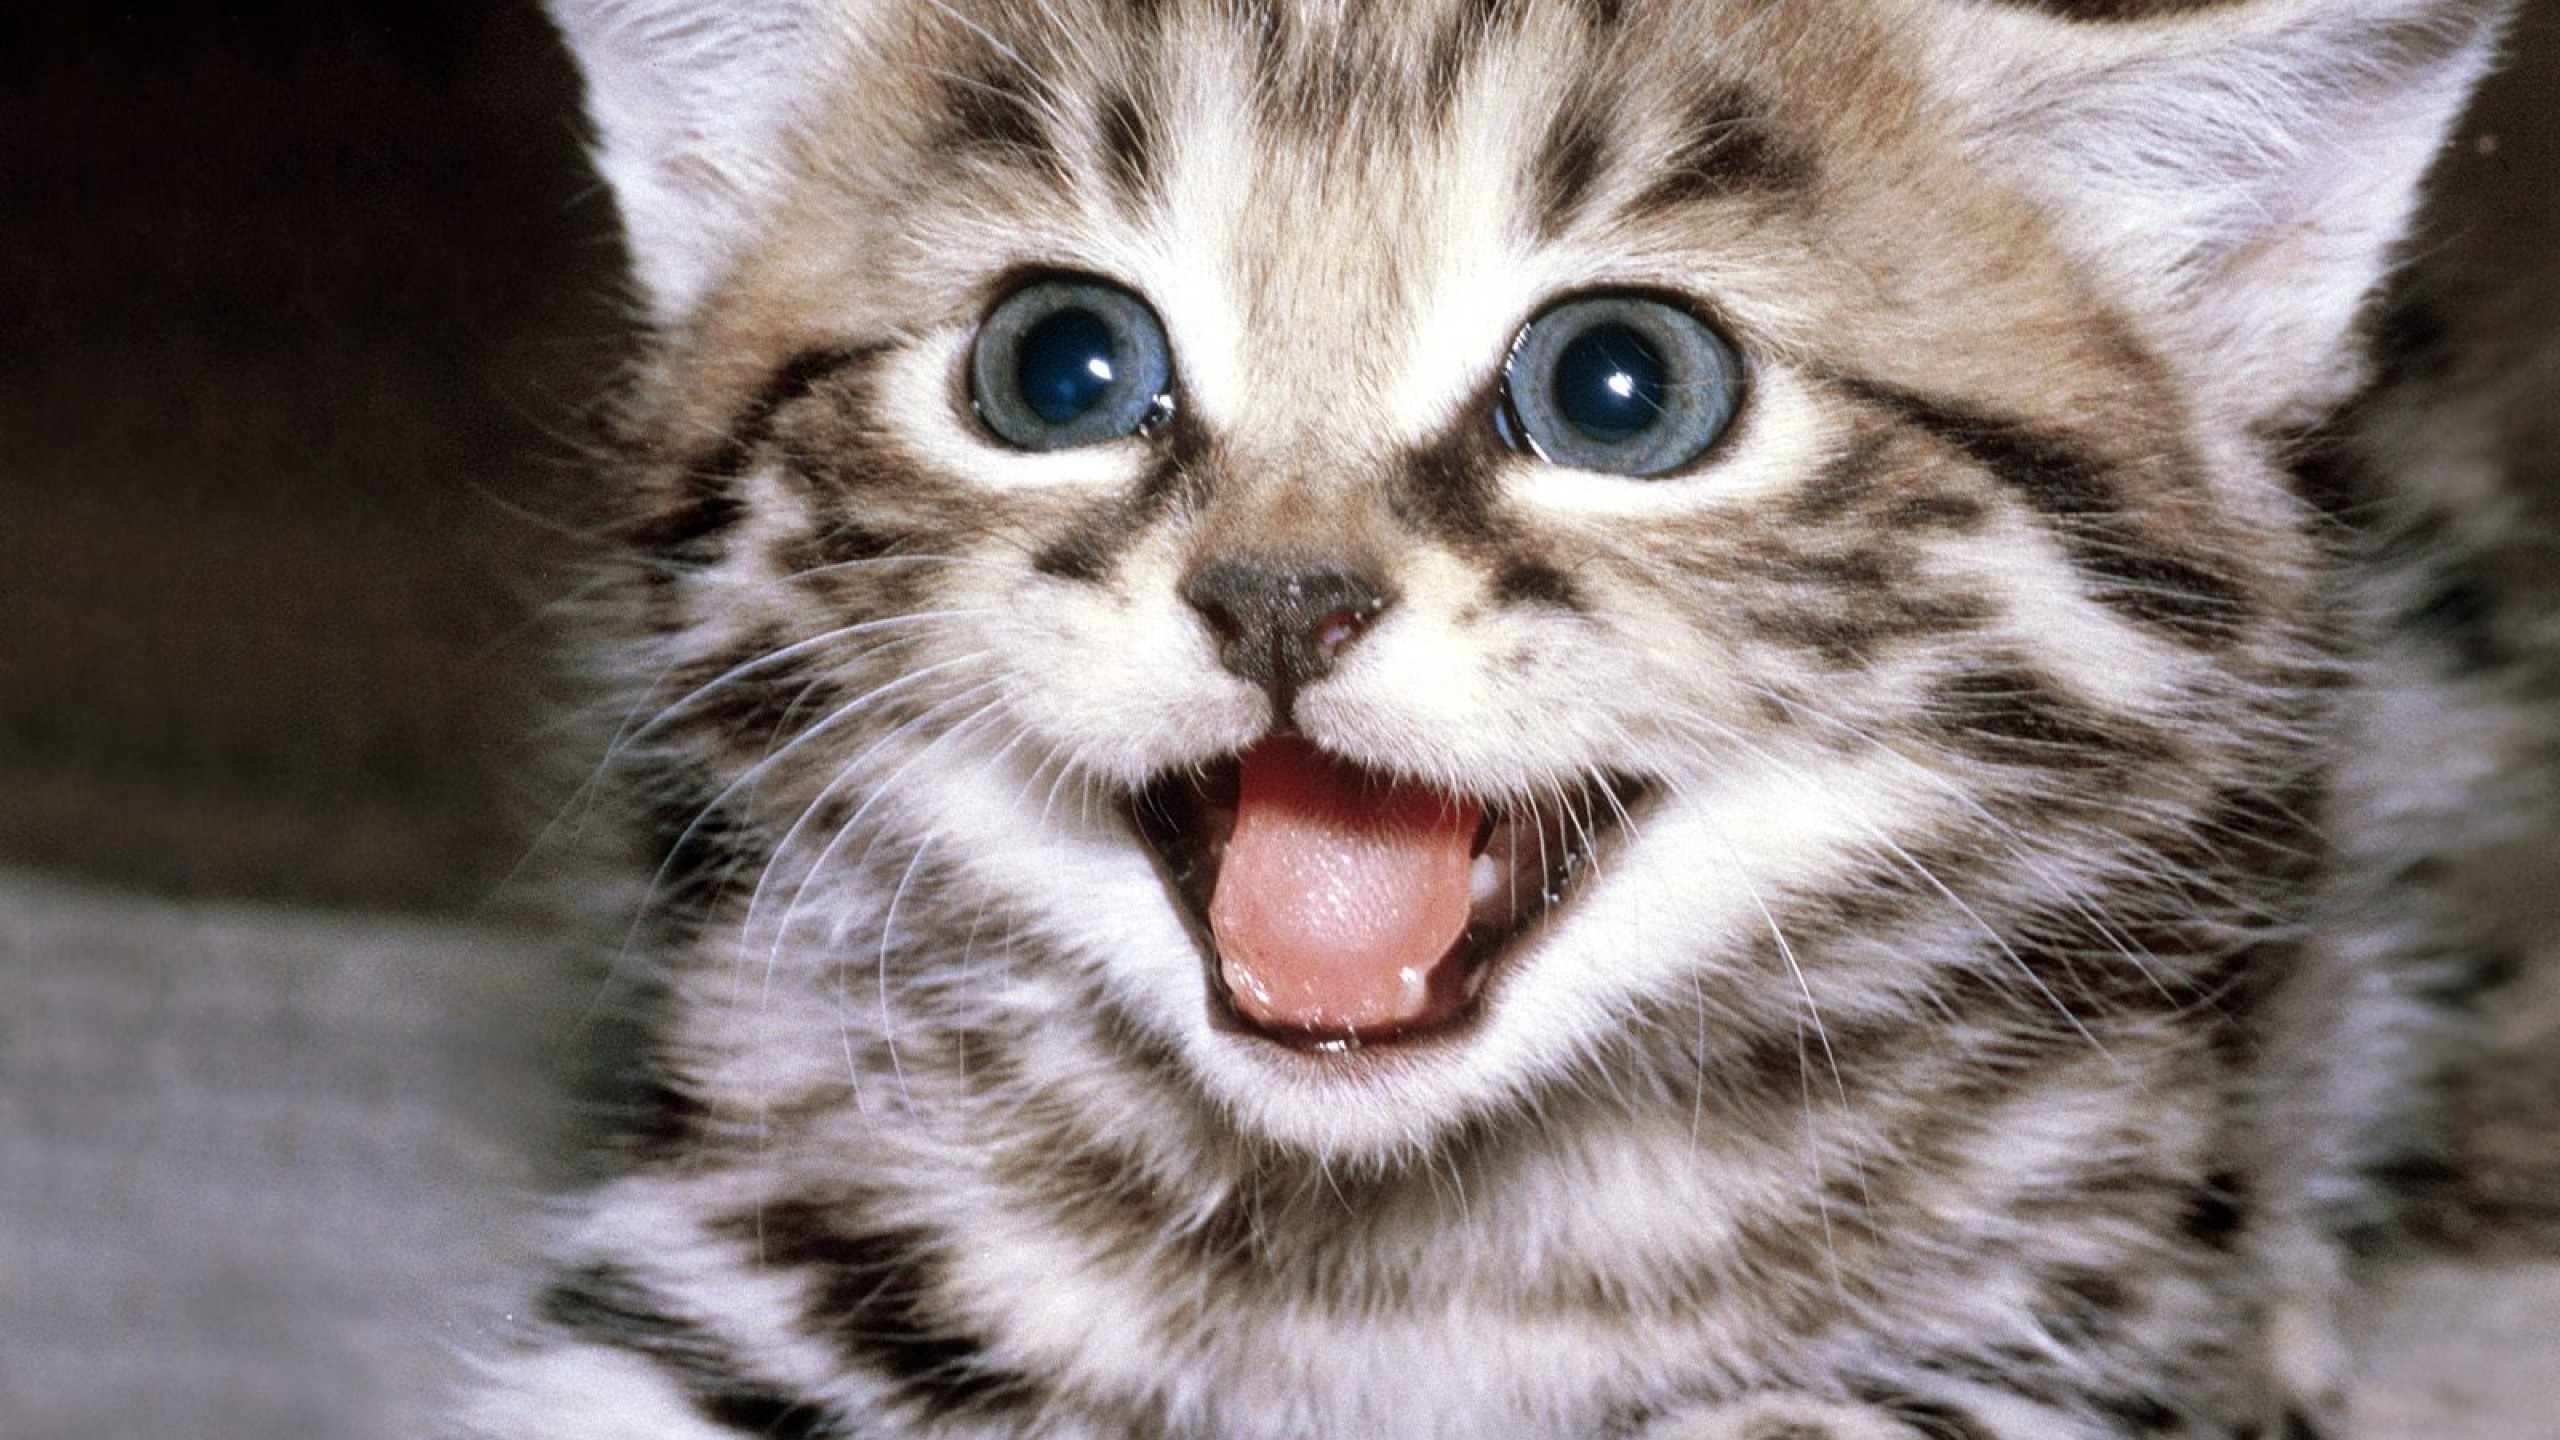 Cute Cats 559 Images HD